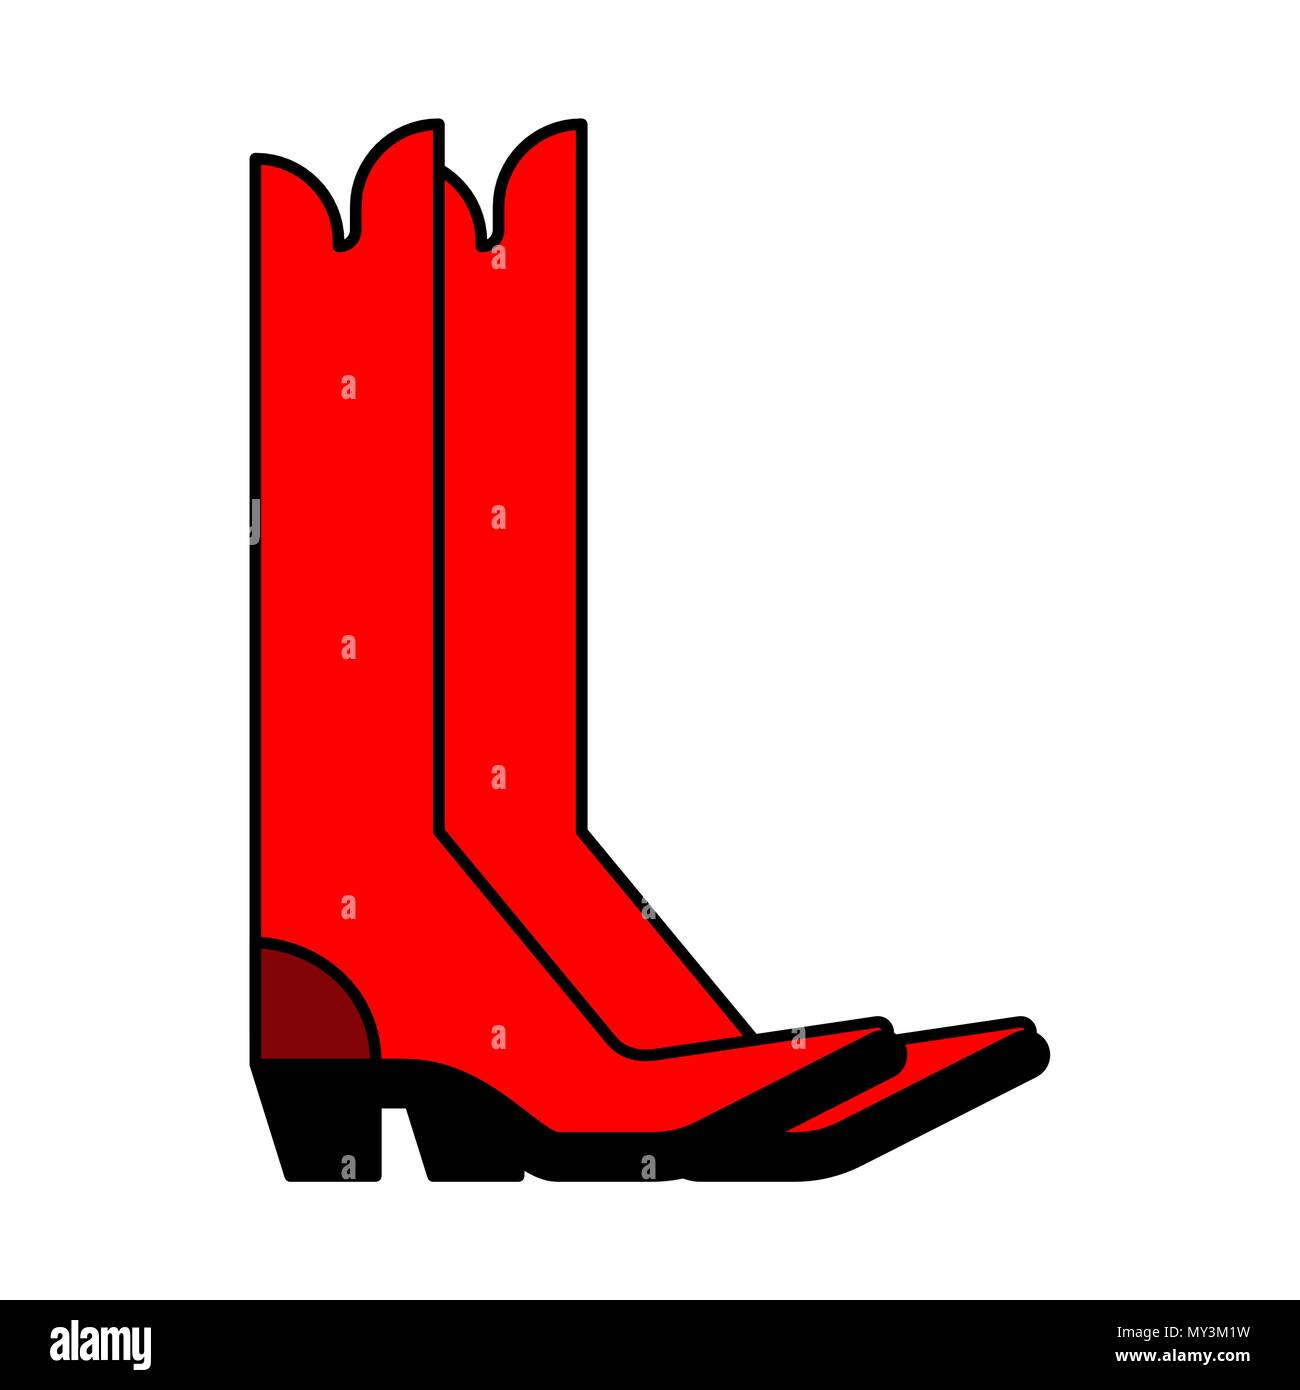 ba247f4278a Work Boot Vector Vectors Stock Photos & Work Boot Vector Vectors ...